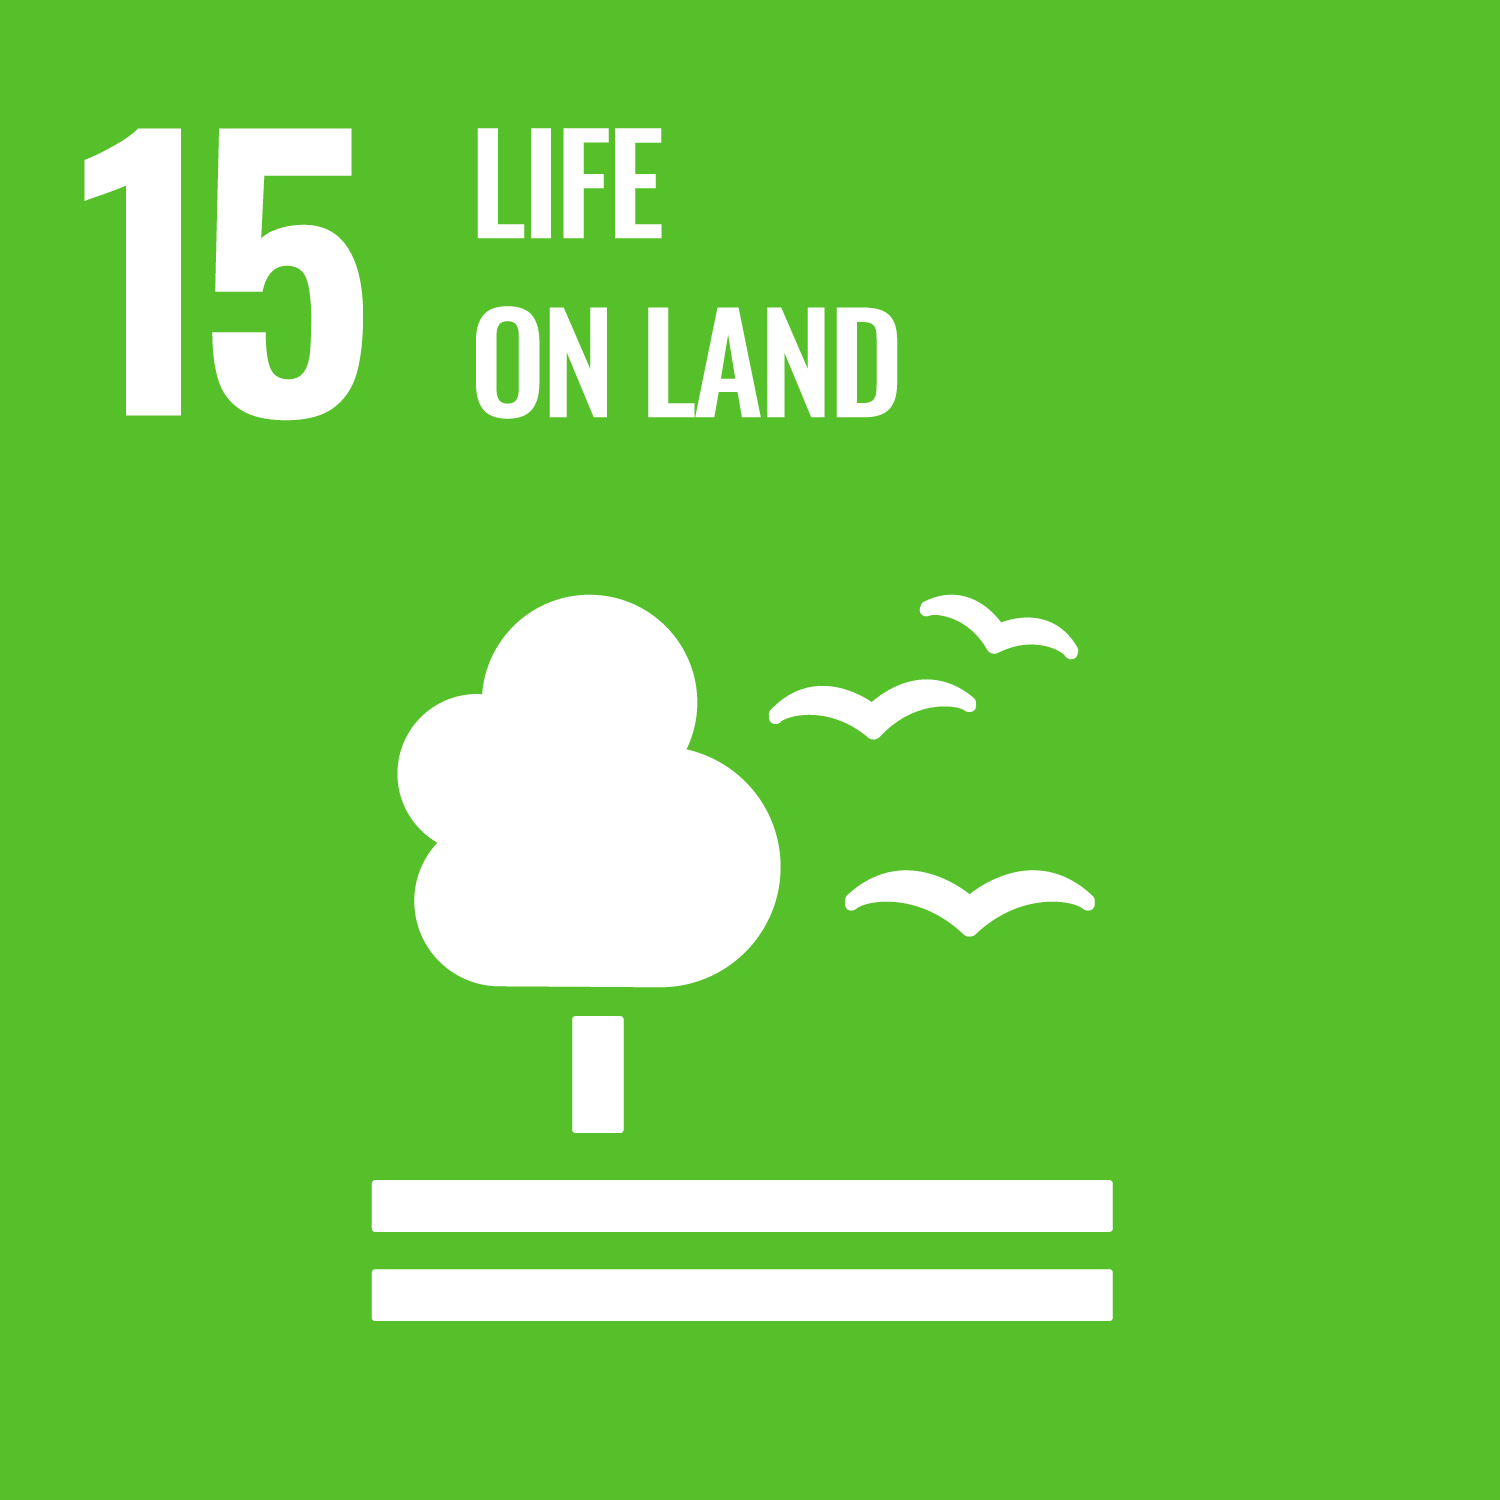 Sustainable Development Goal - Life on Land